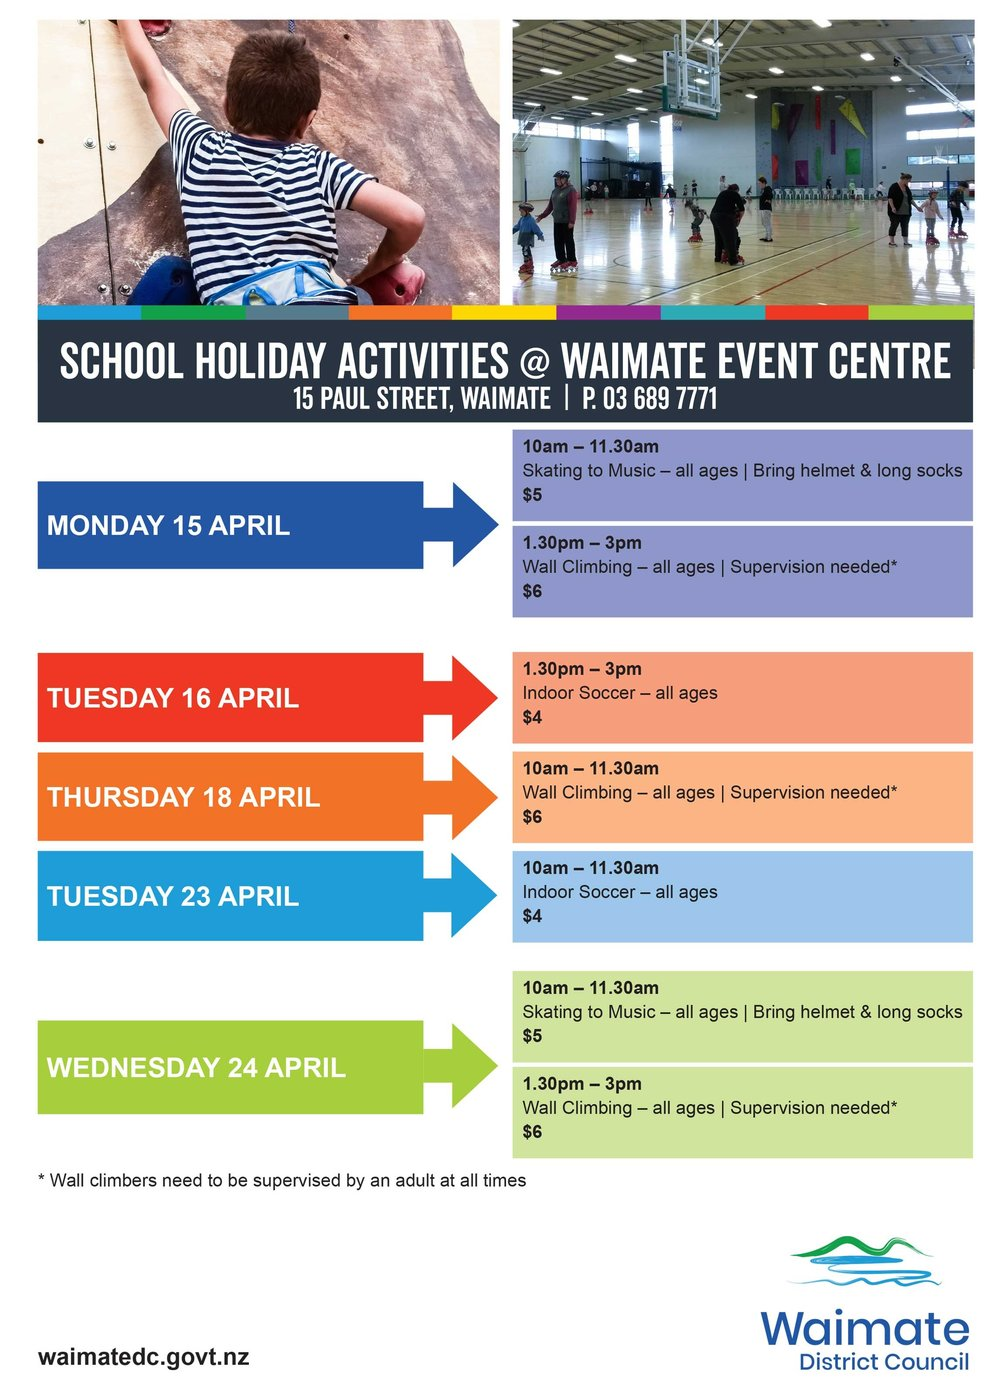 Outside of these activities you can head to the Event Centre and play badminton, table tennis, shoot hoops, skate and more.  It's a good idea to phone and check before coming in, incase the courts are booked. You need to book to use the climbing wall.  Learn more about the Waimate Event Centre  here .